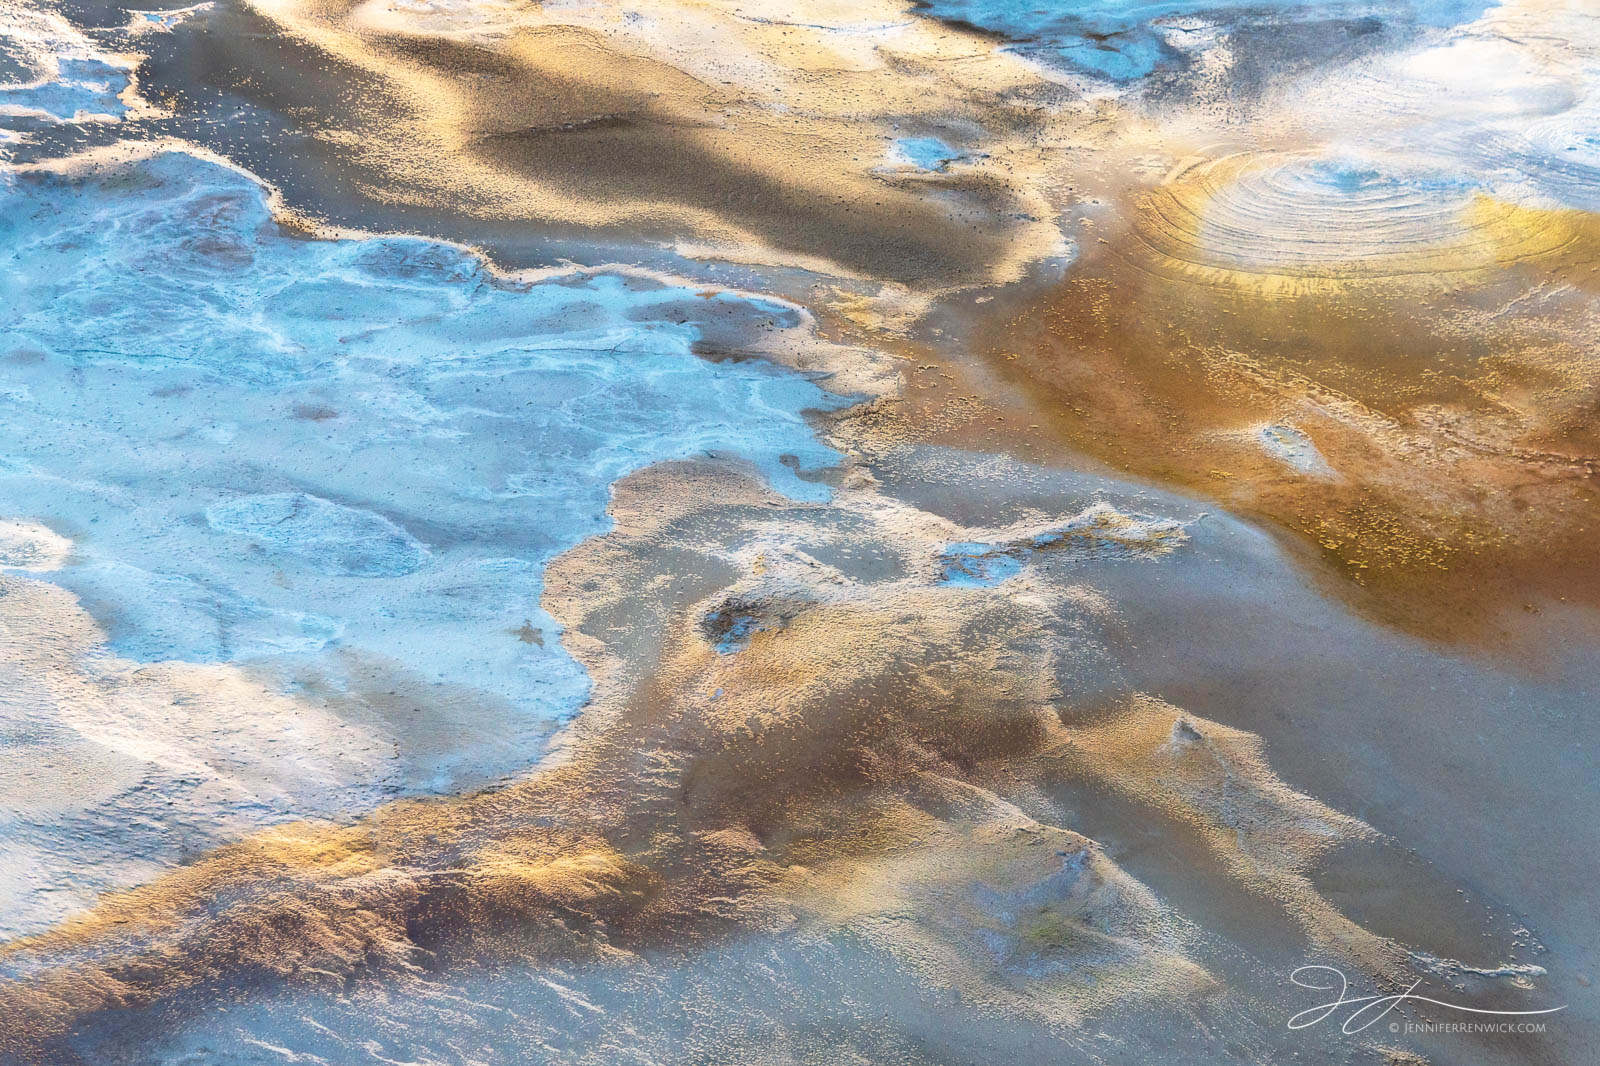 Blue and gold colors create a colorful scene in Porcelain Springs in Norris Geyser Basin.